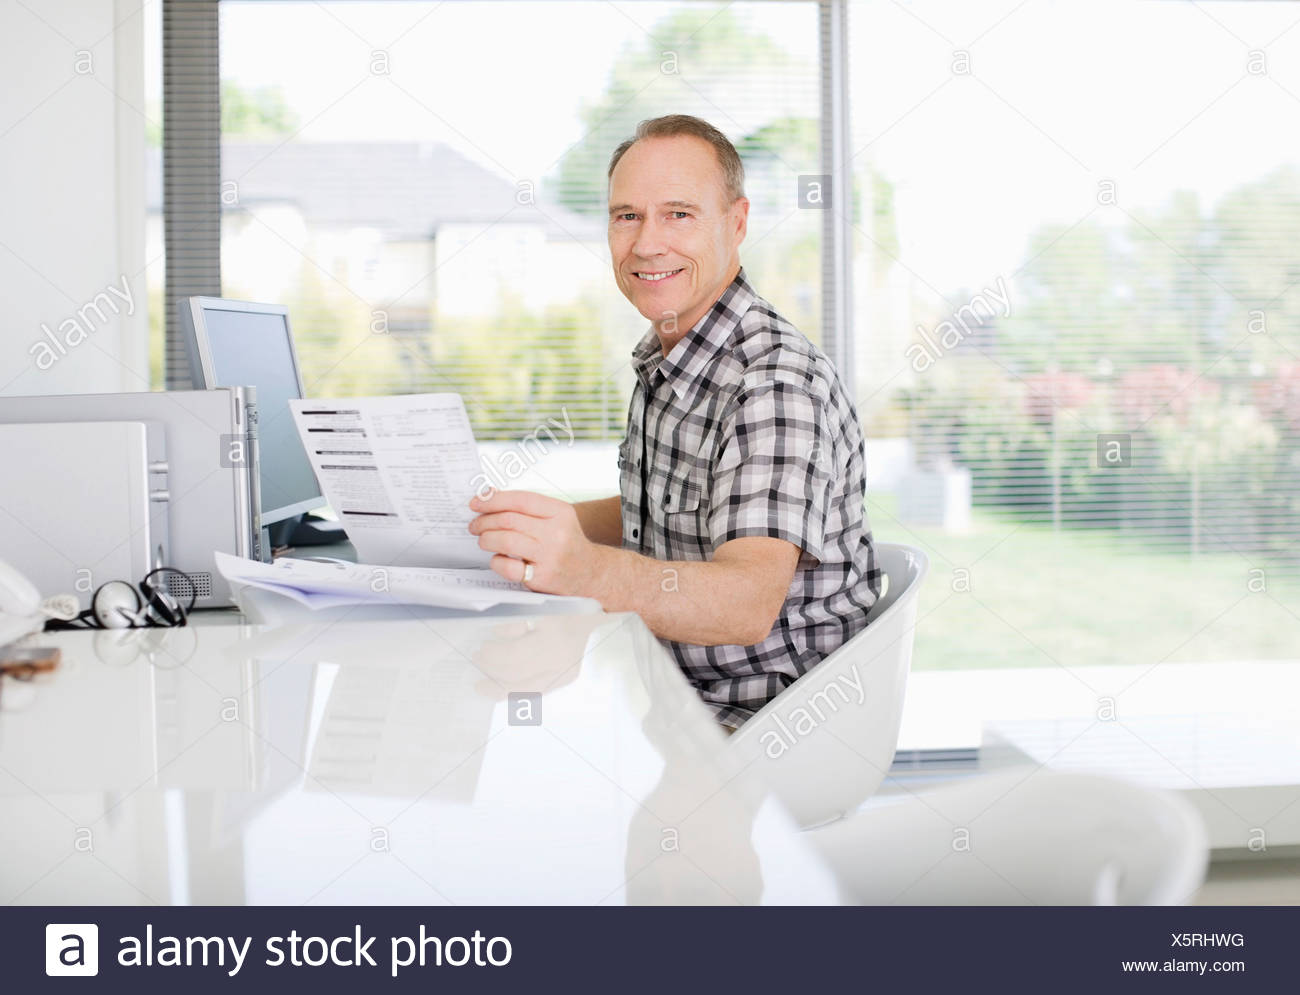 Man paying bills on computer - Stock Image